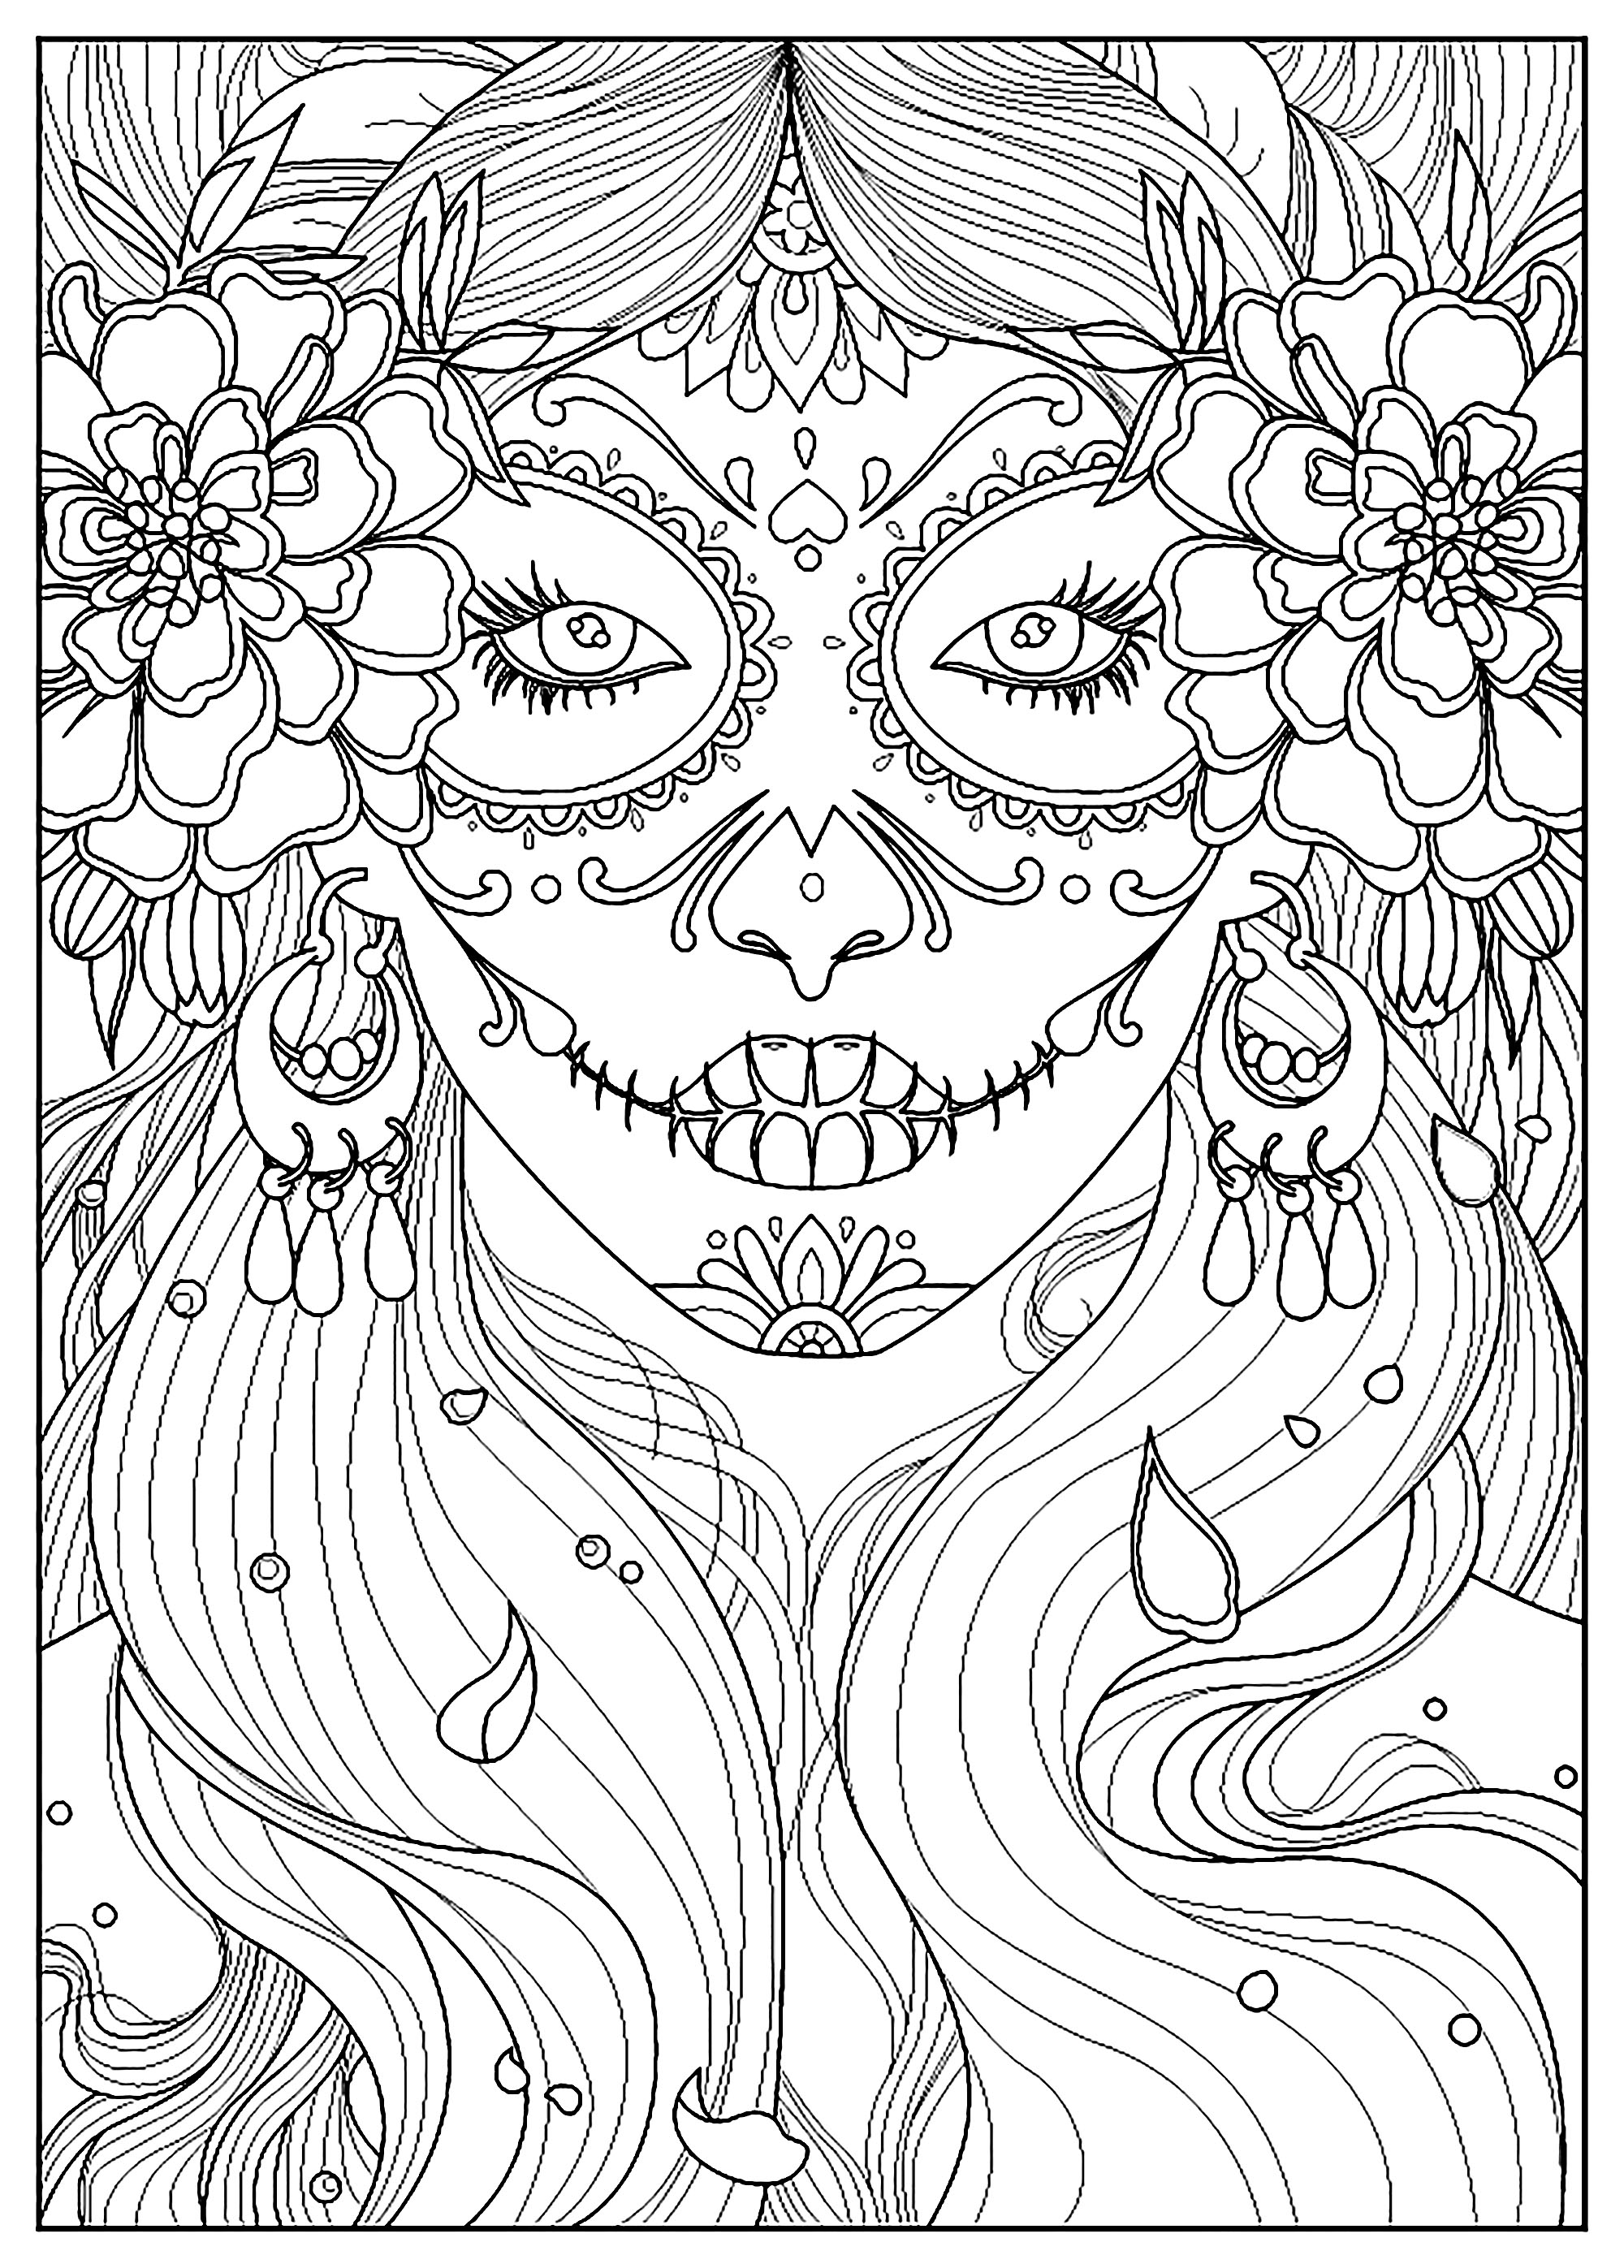 coloring printable day of the dead skull coloring pages for adults the printable day dead coloring of